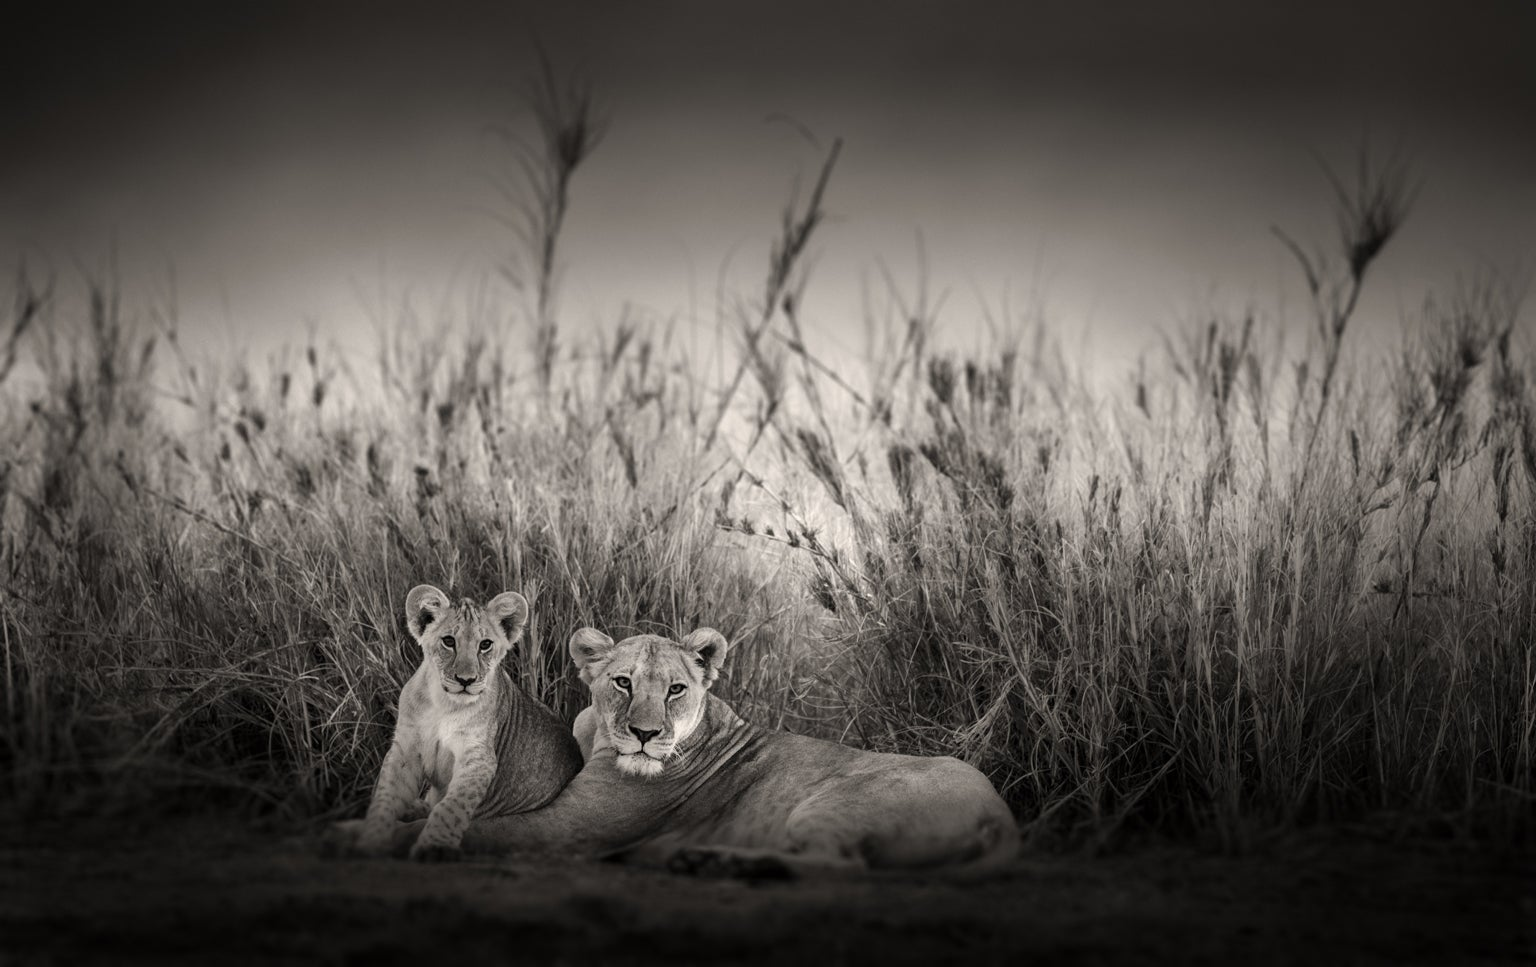 Lioness and her cub lying on grass.